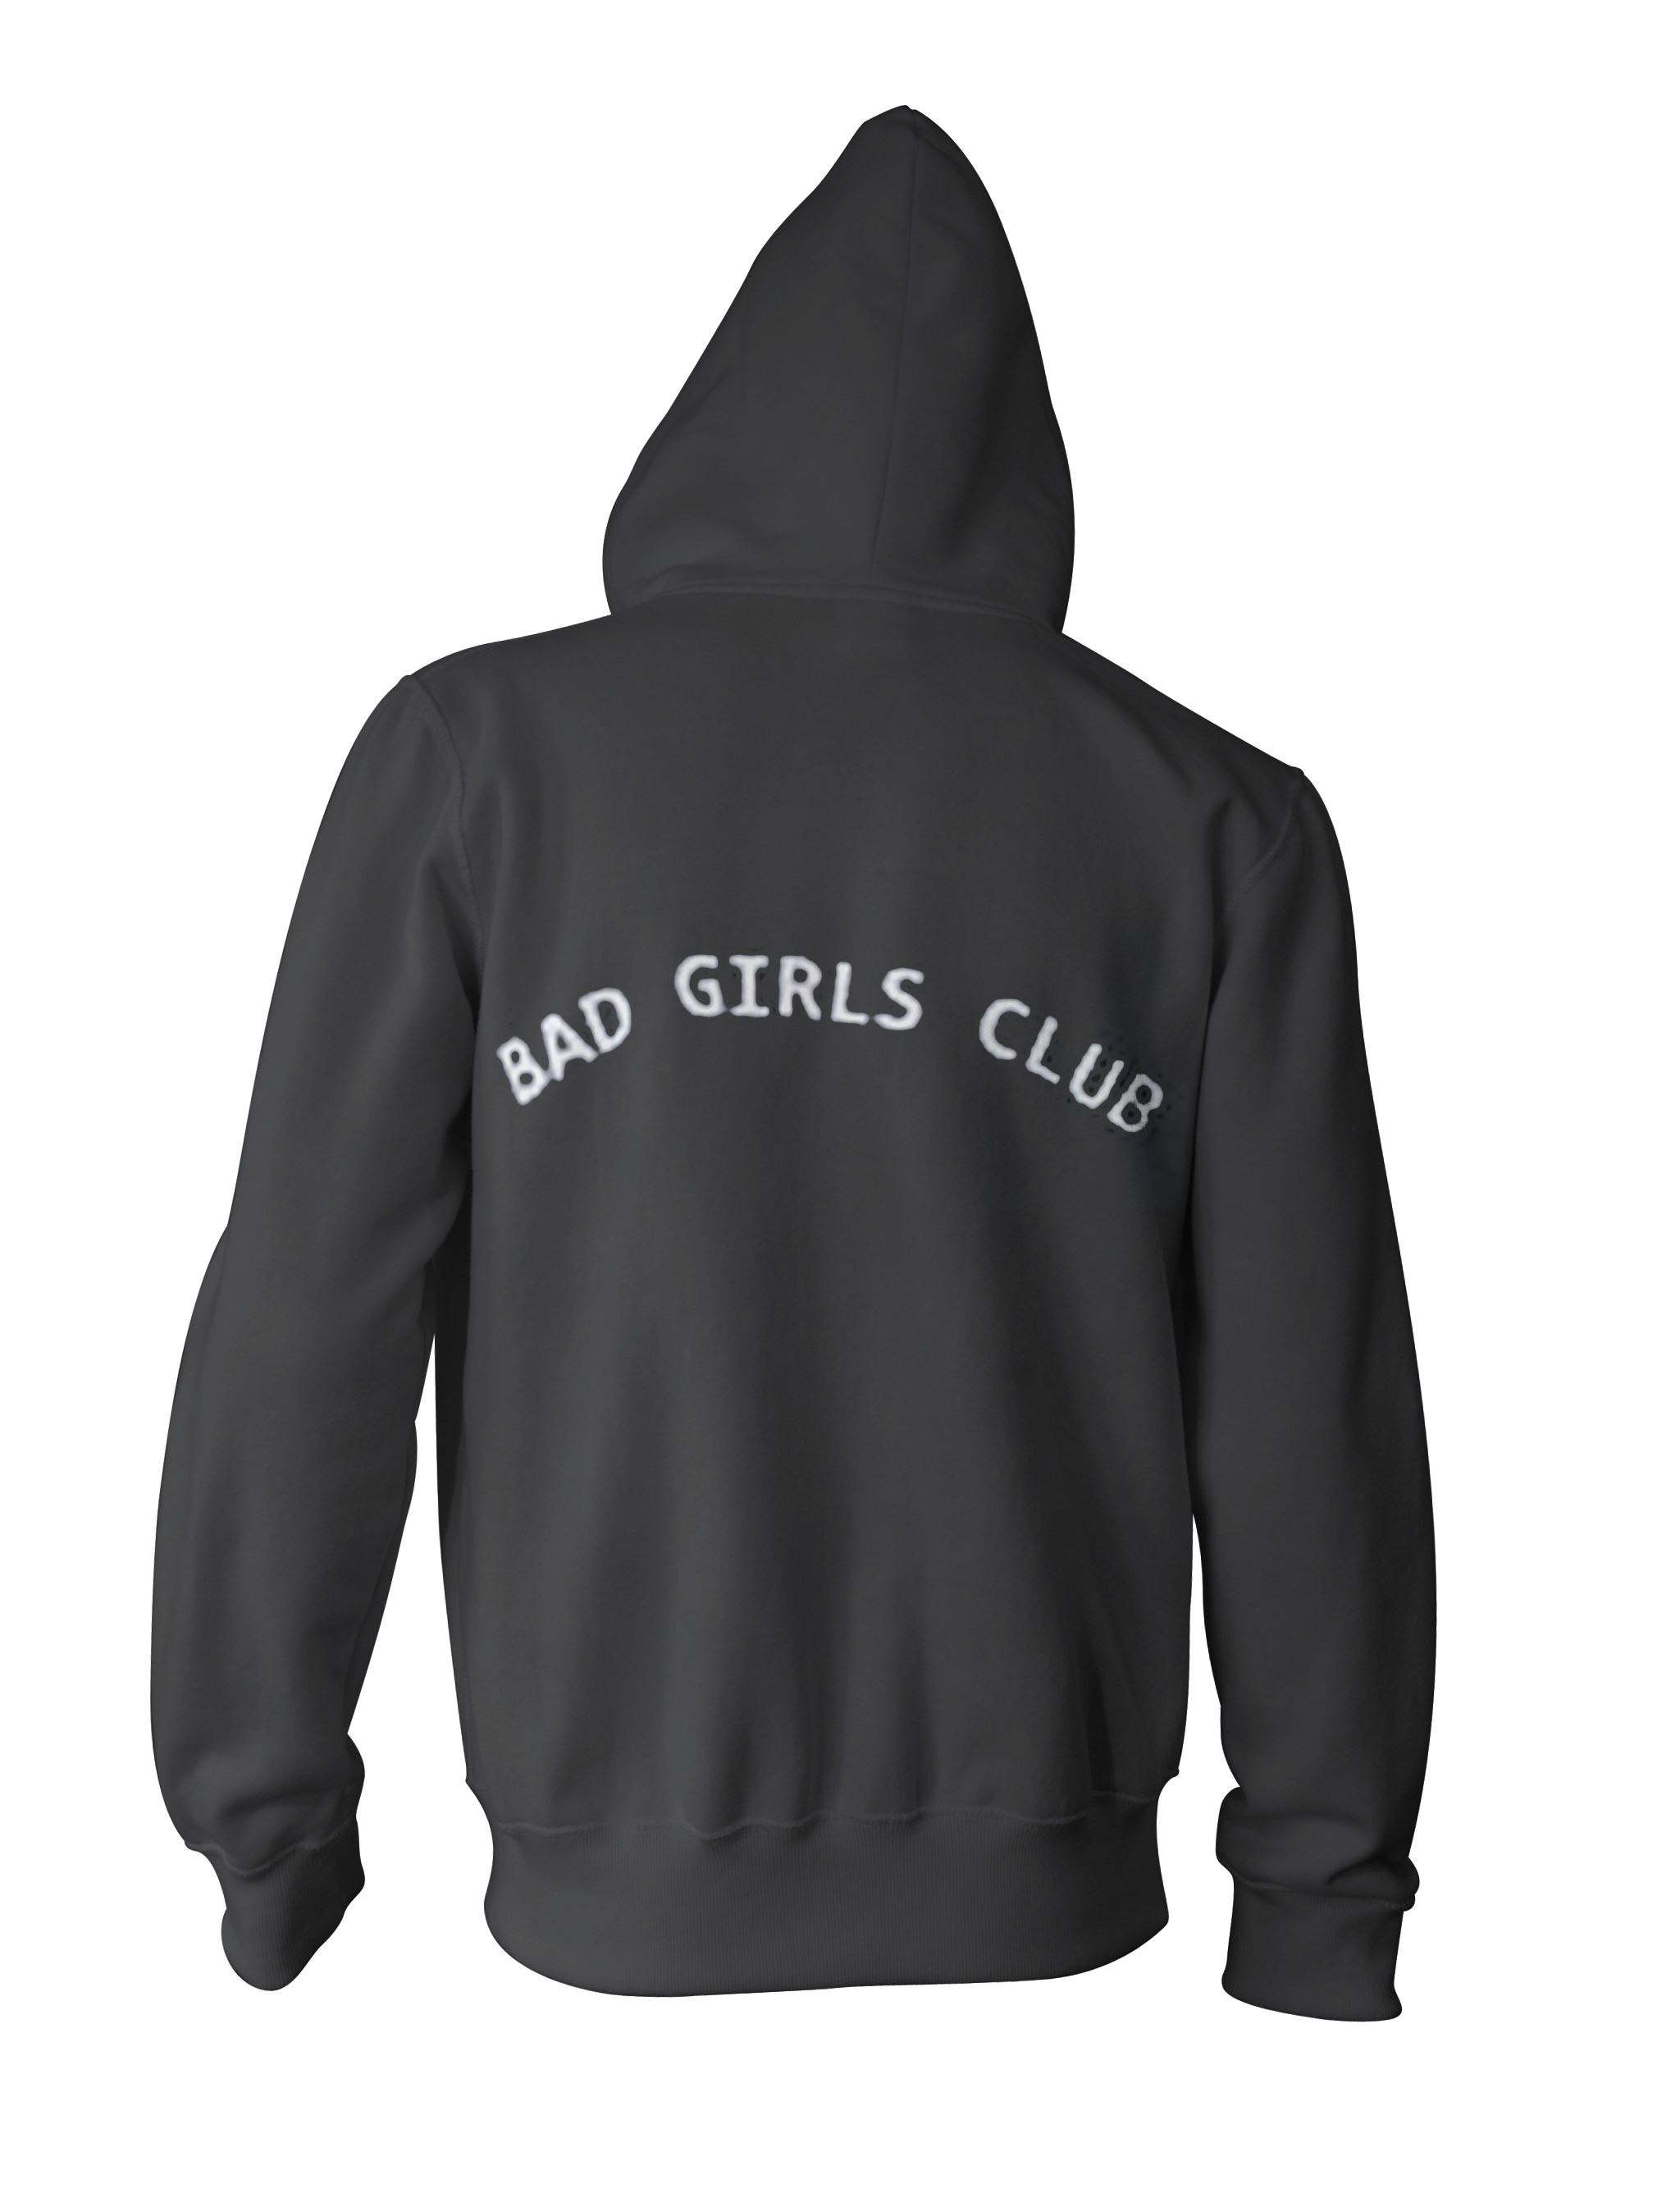 Bad Girls Club Hoodie